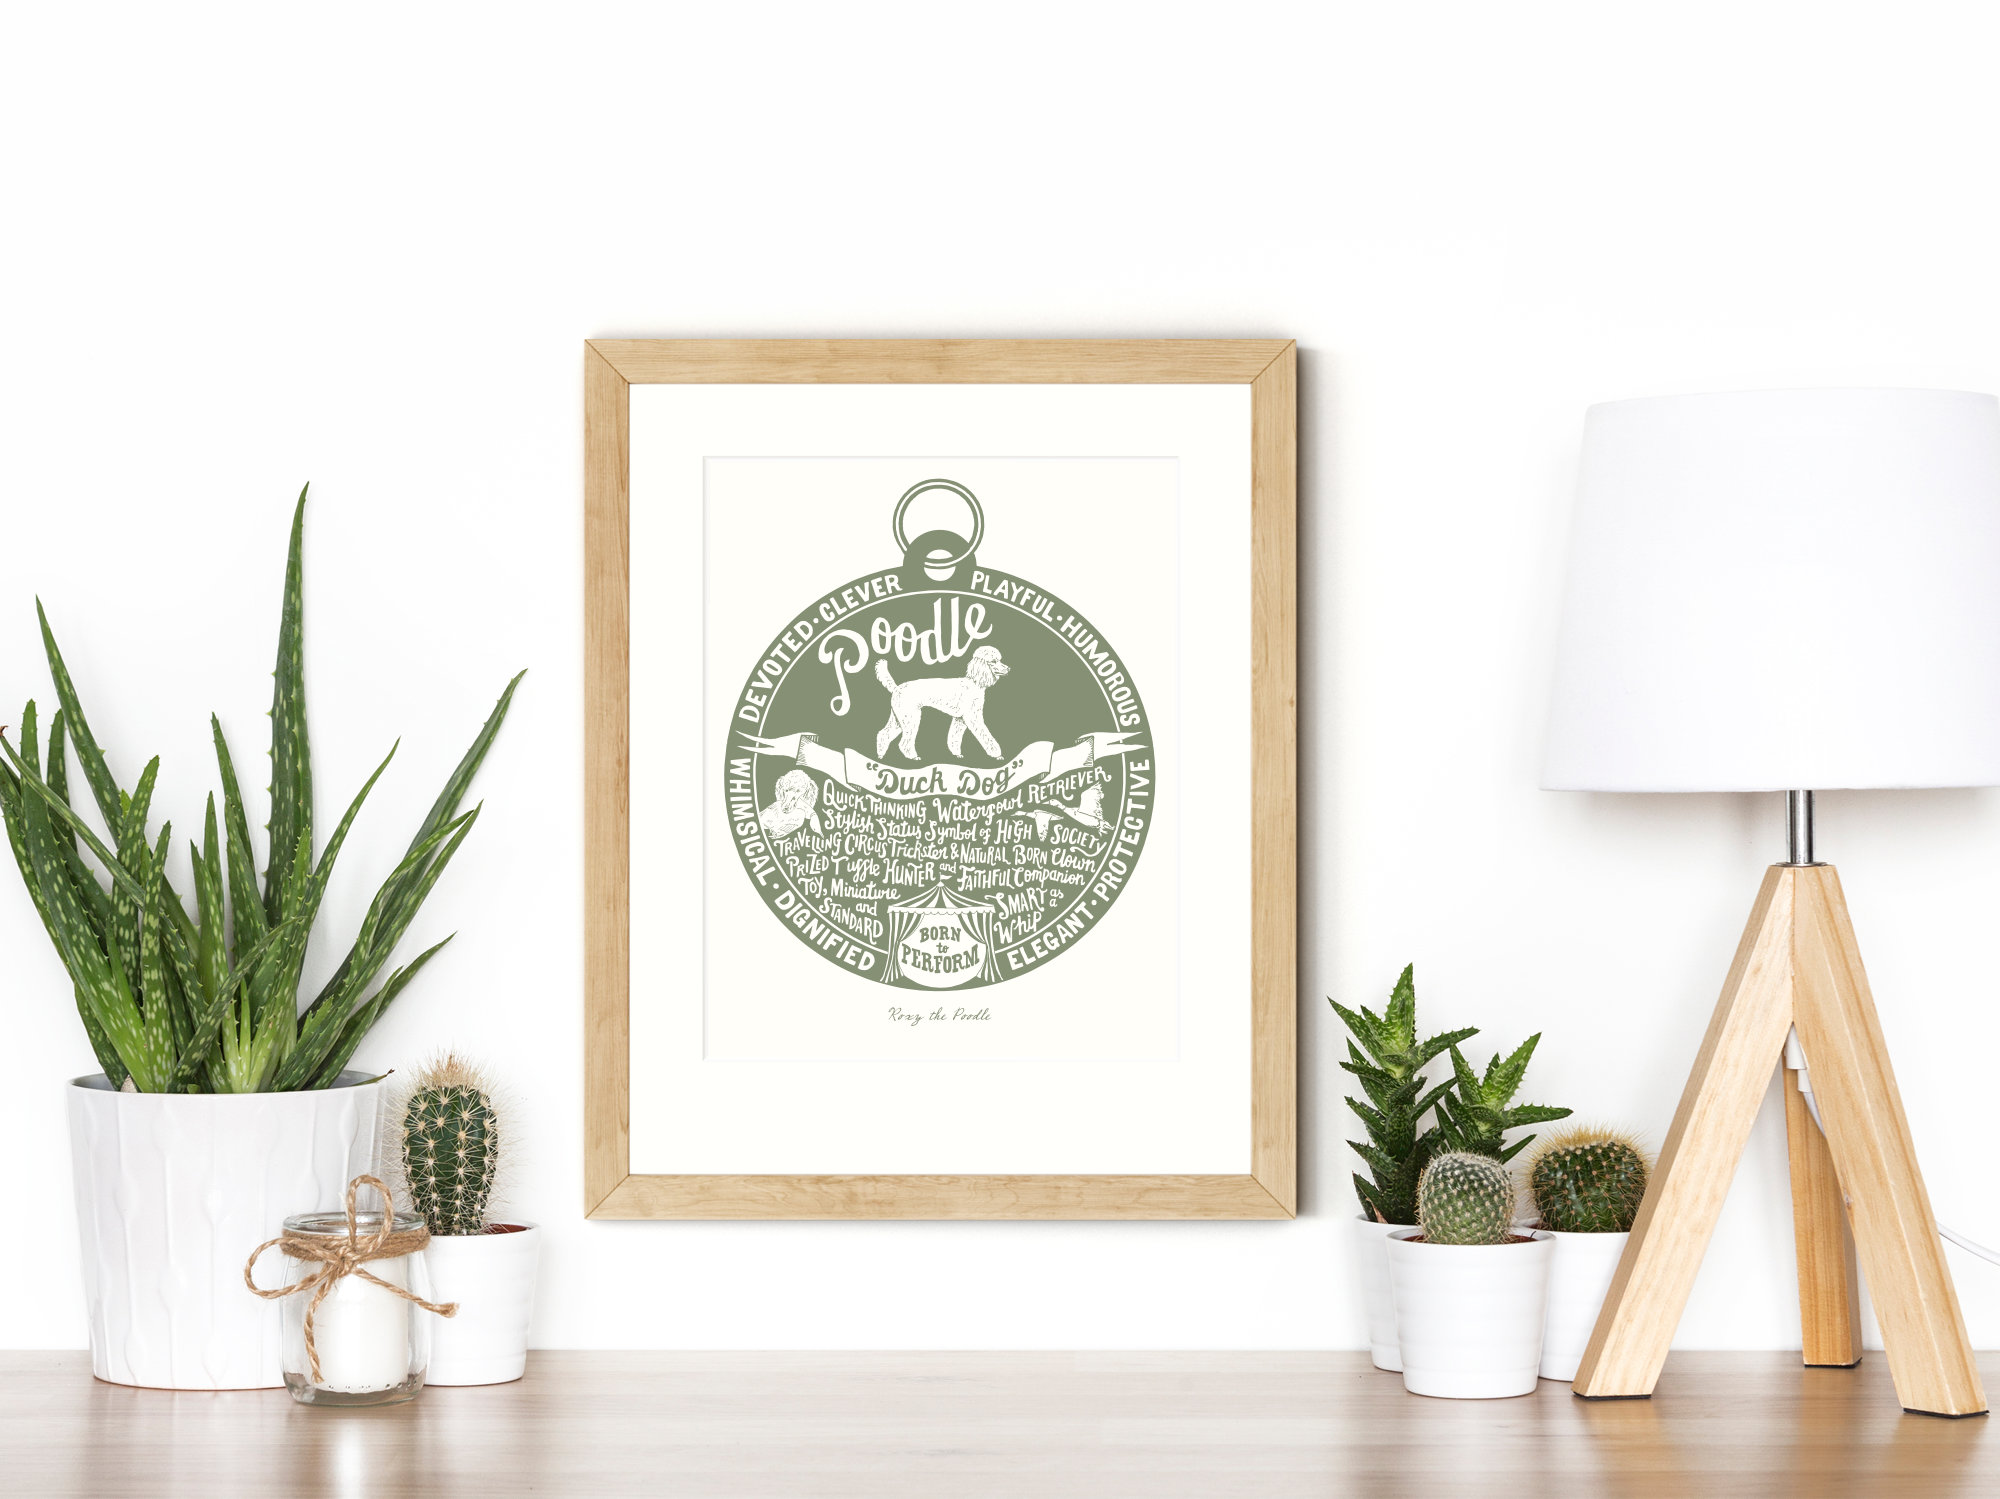 Poodle lover dog art gifts by The Enlightened Hound